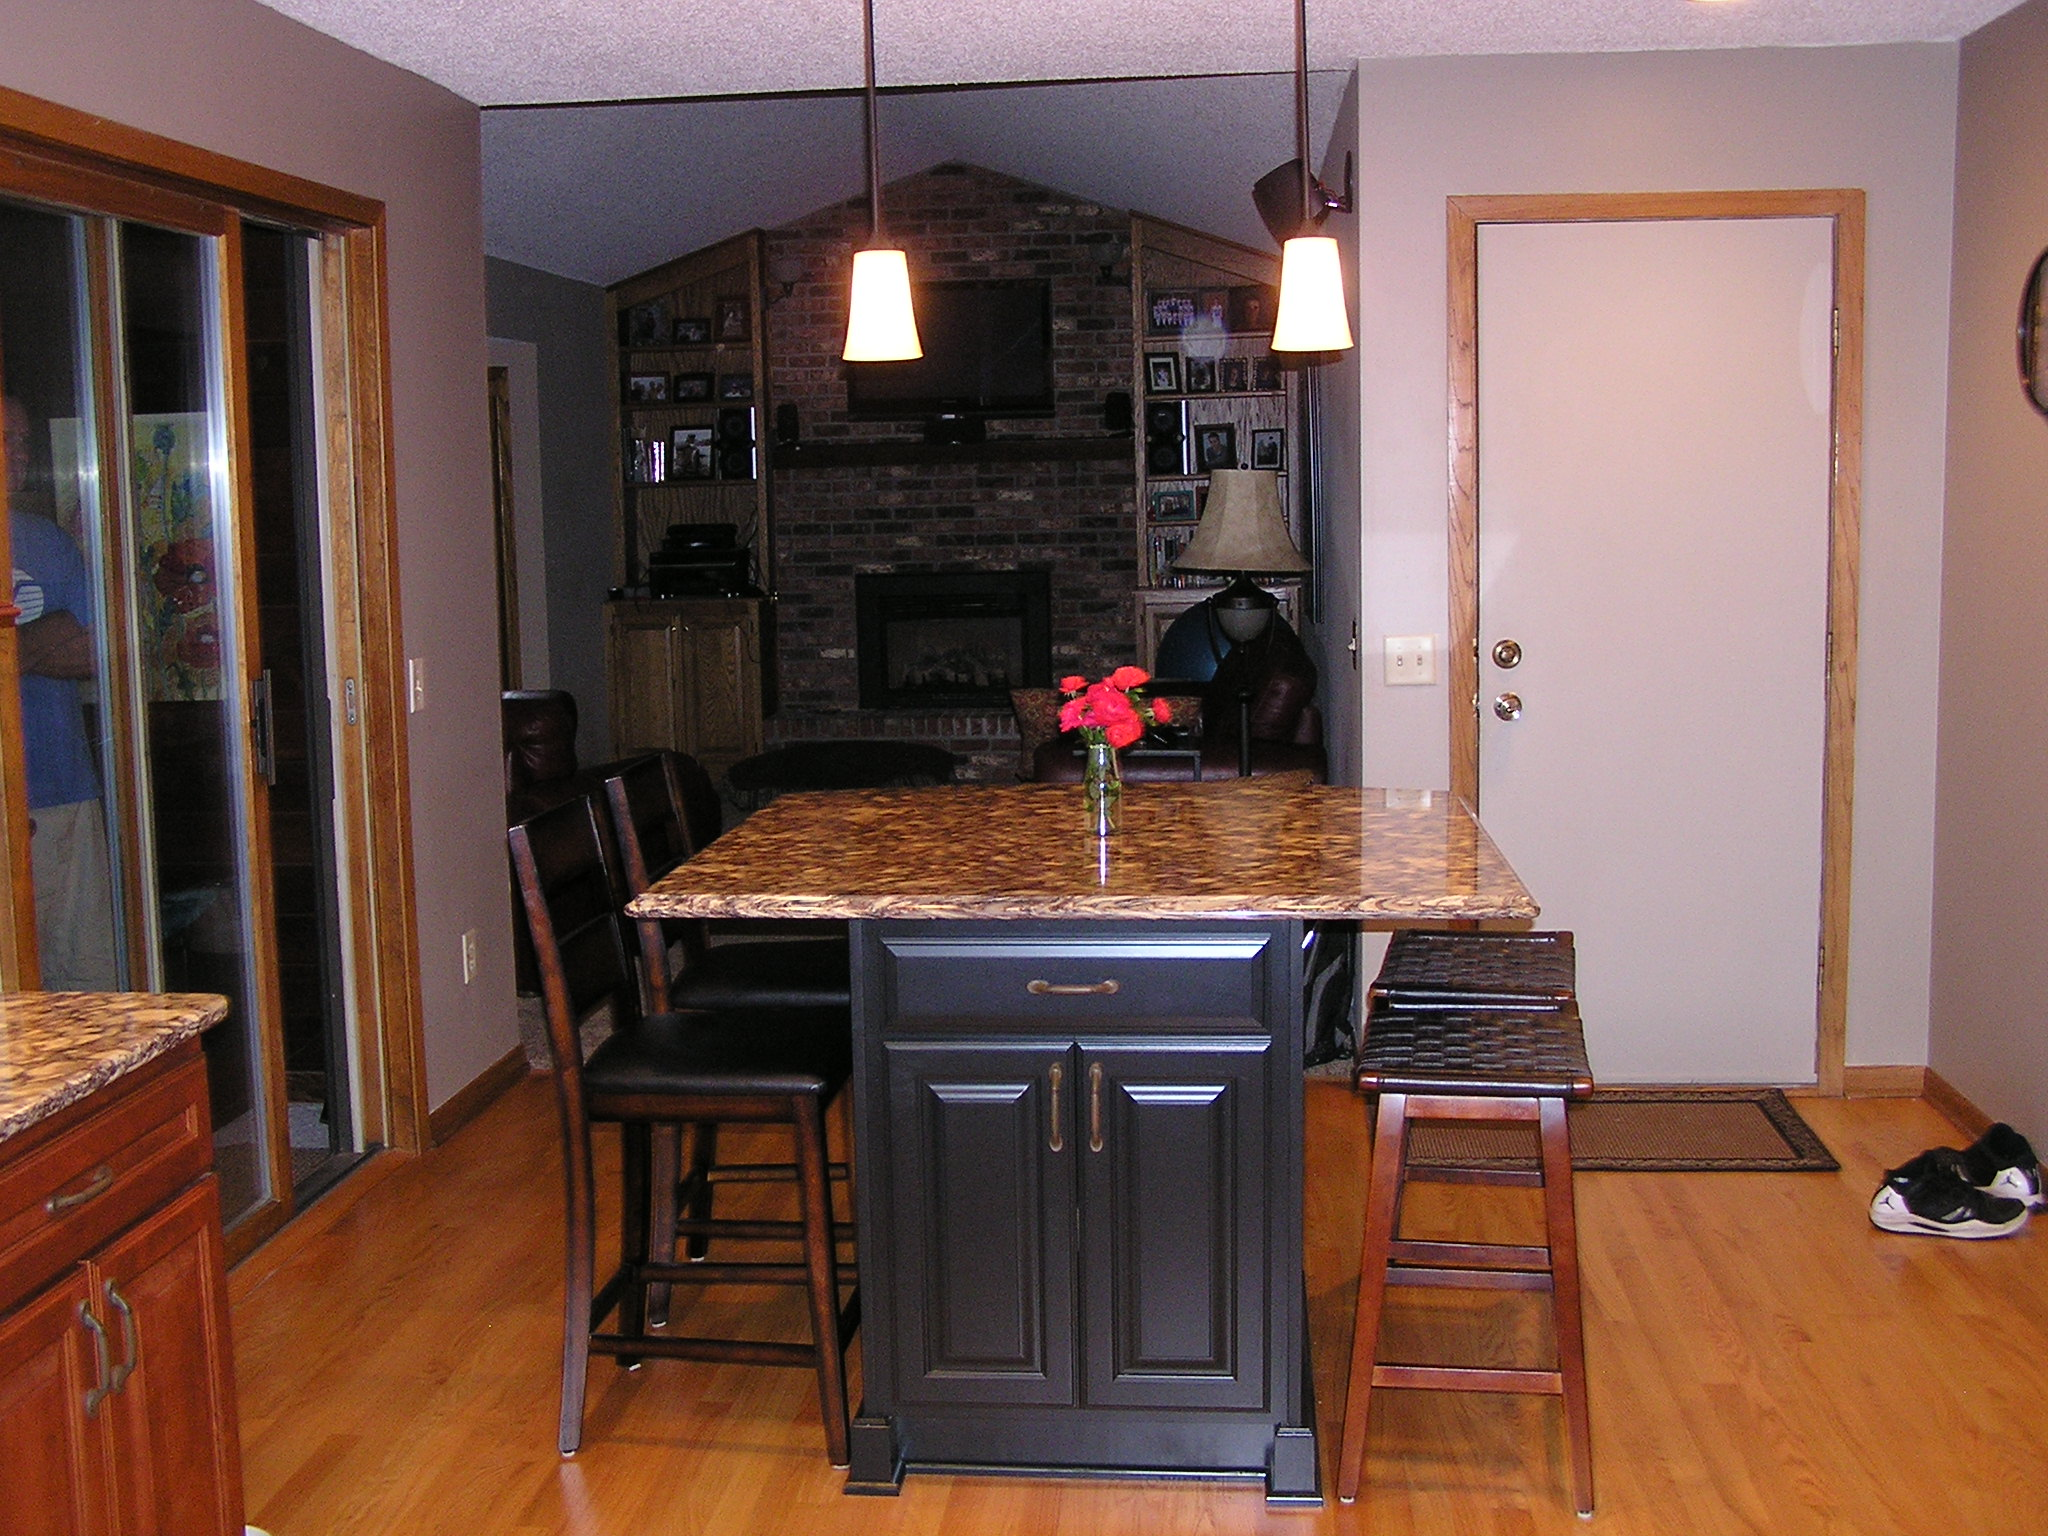 Apple Valley kitchen & Bath remodeling